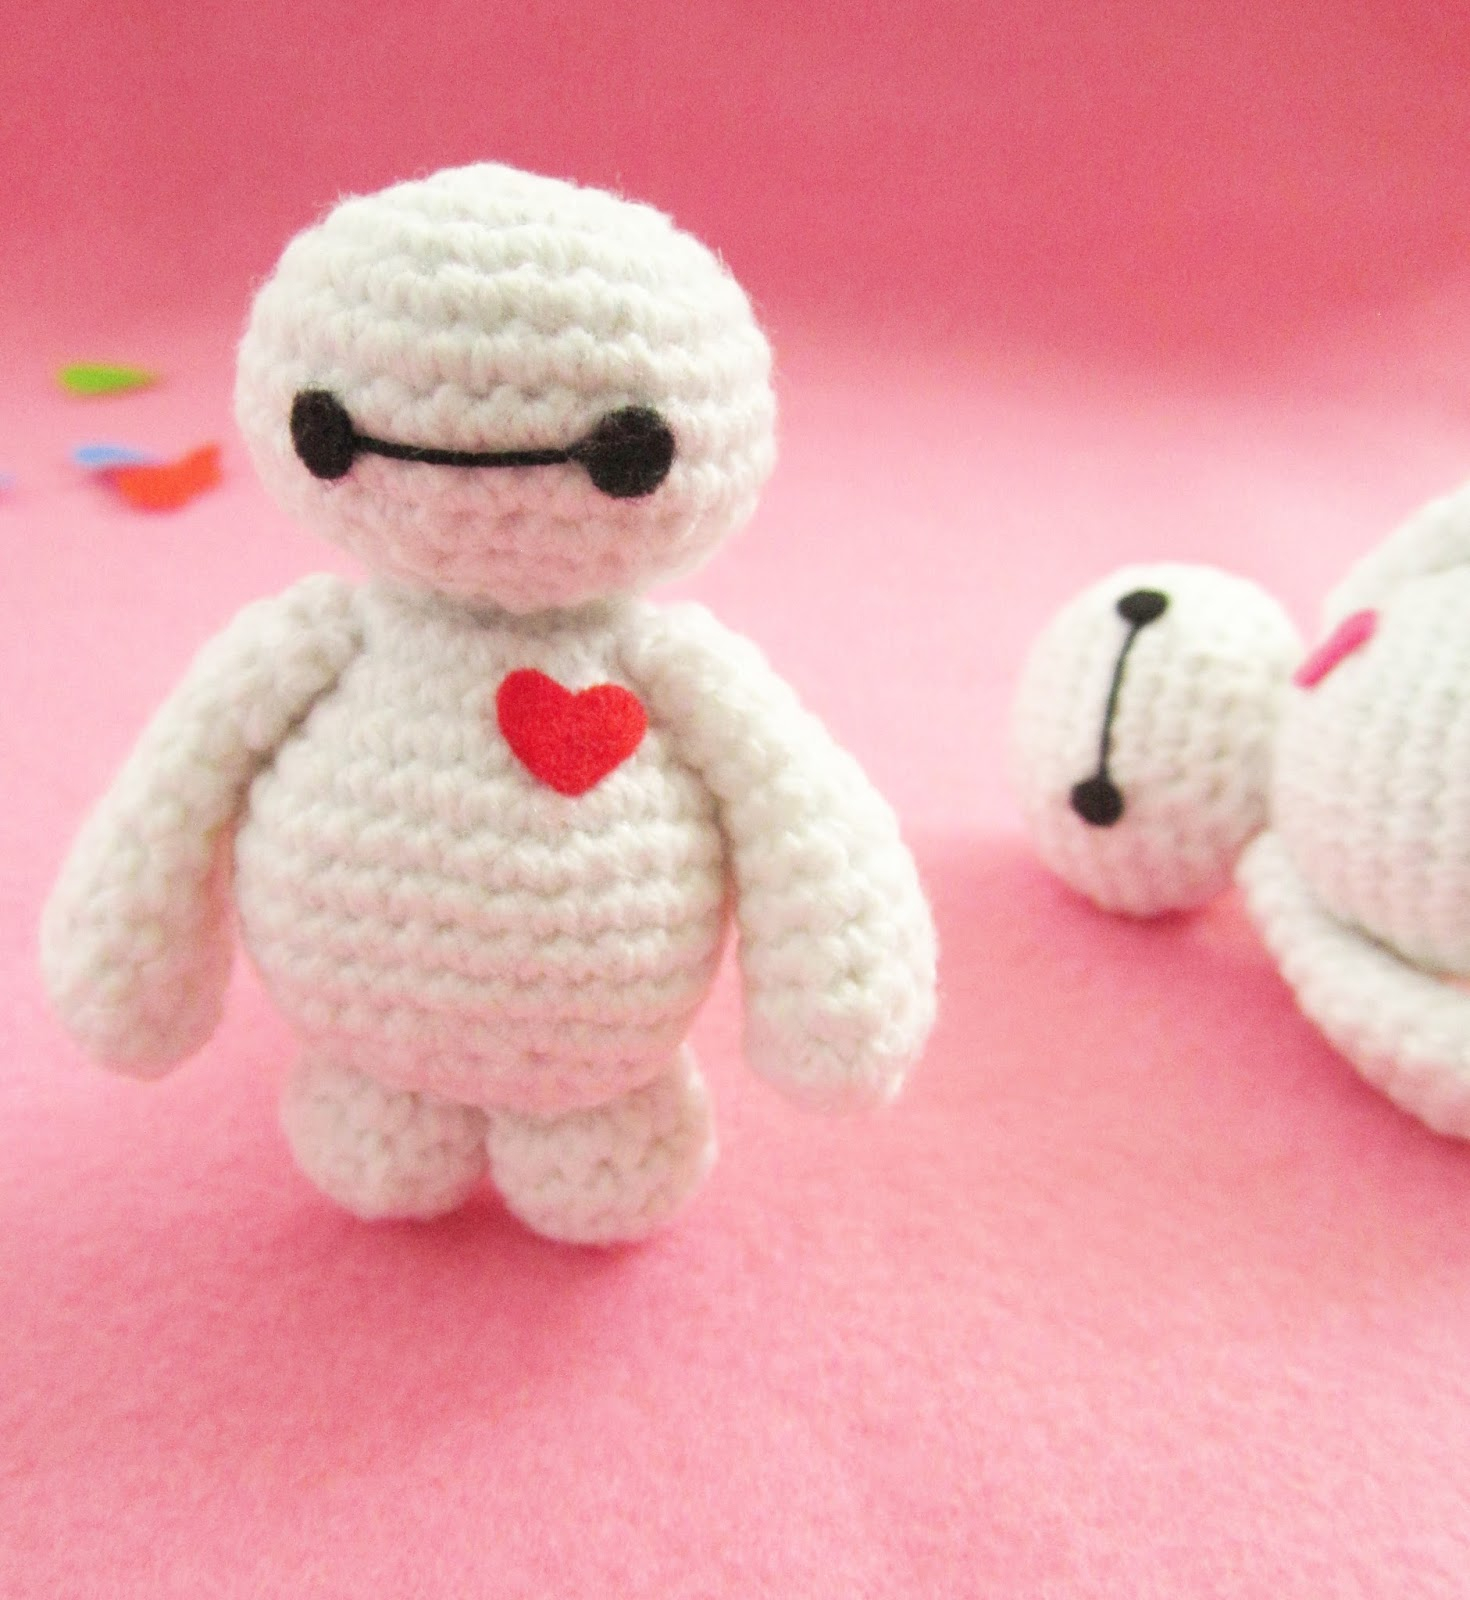 Amigurumi Change Yarn : Baymax amigurumi pattern - A little love everyday!